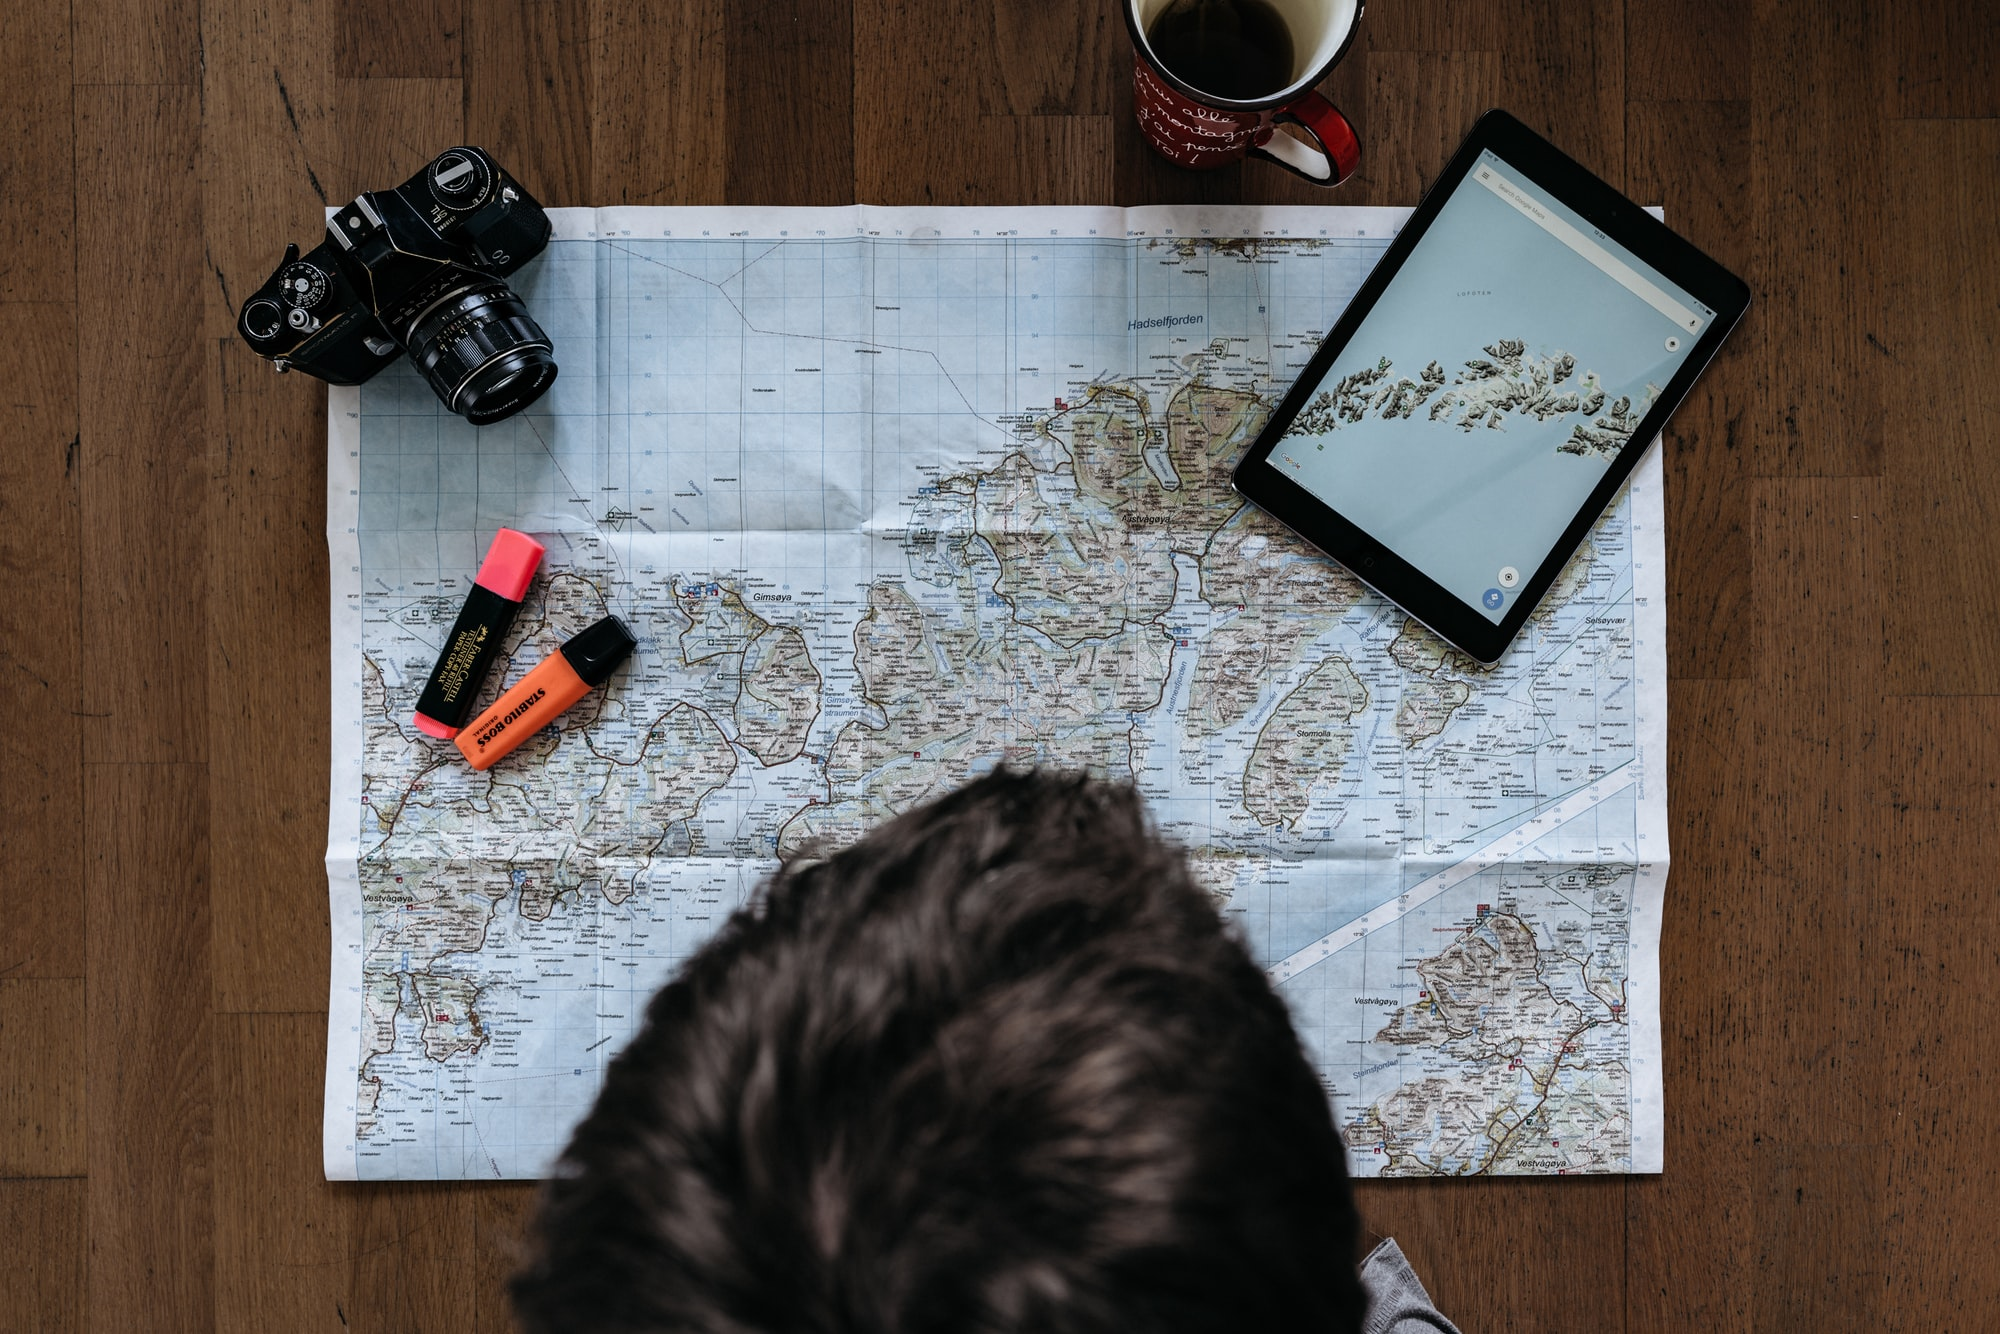 Top 4 Ways That Travel Advisors Can Help Plan Their Clients' Dream Trips During COVID-19